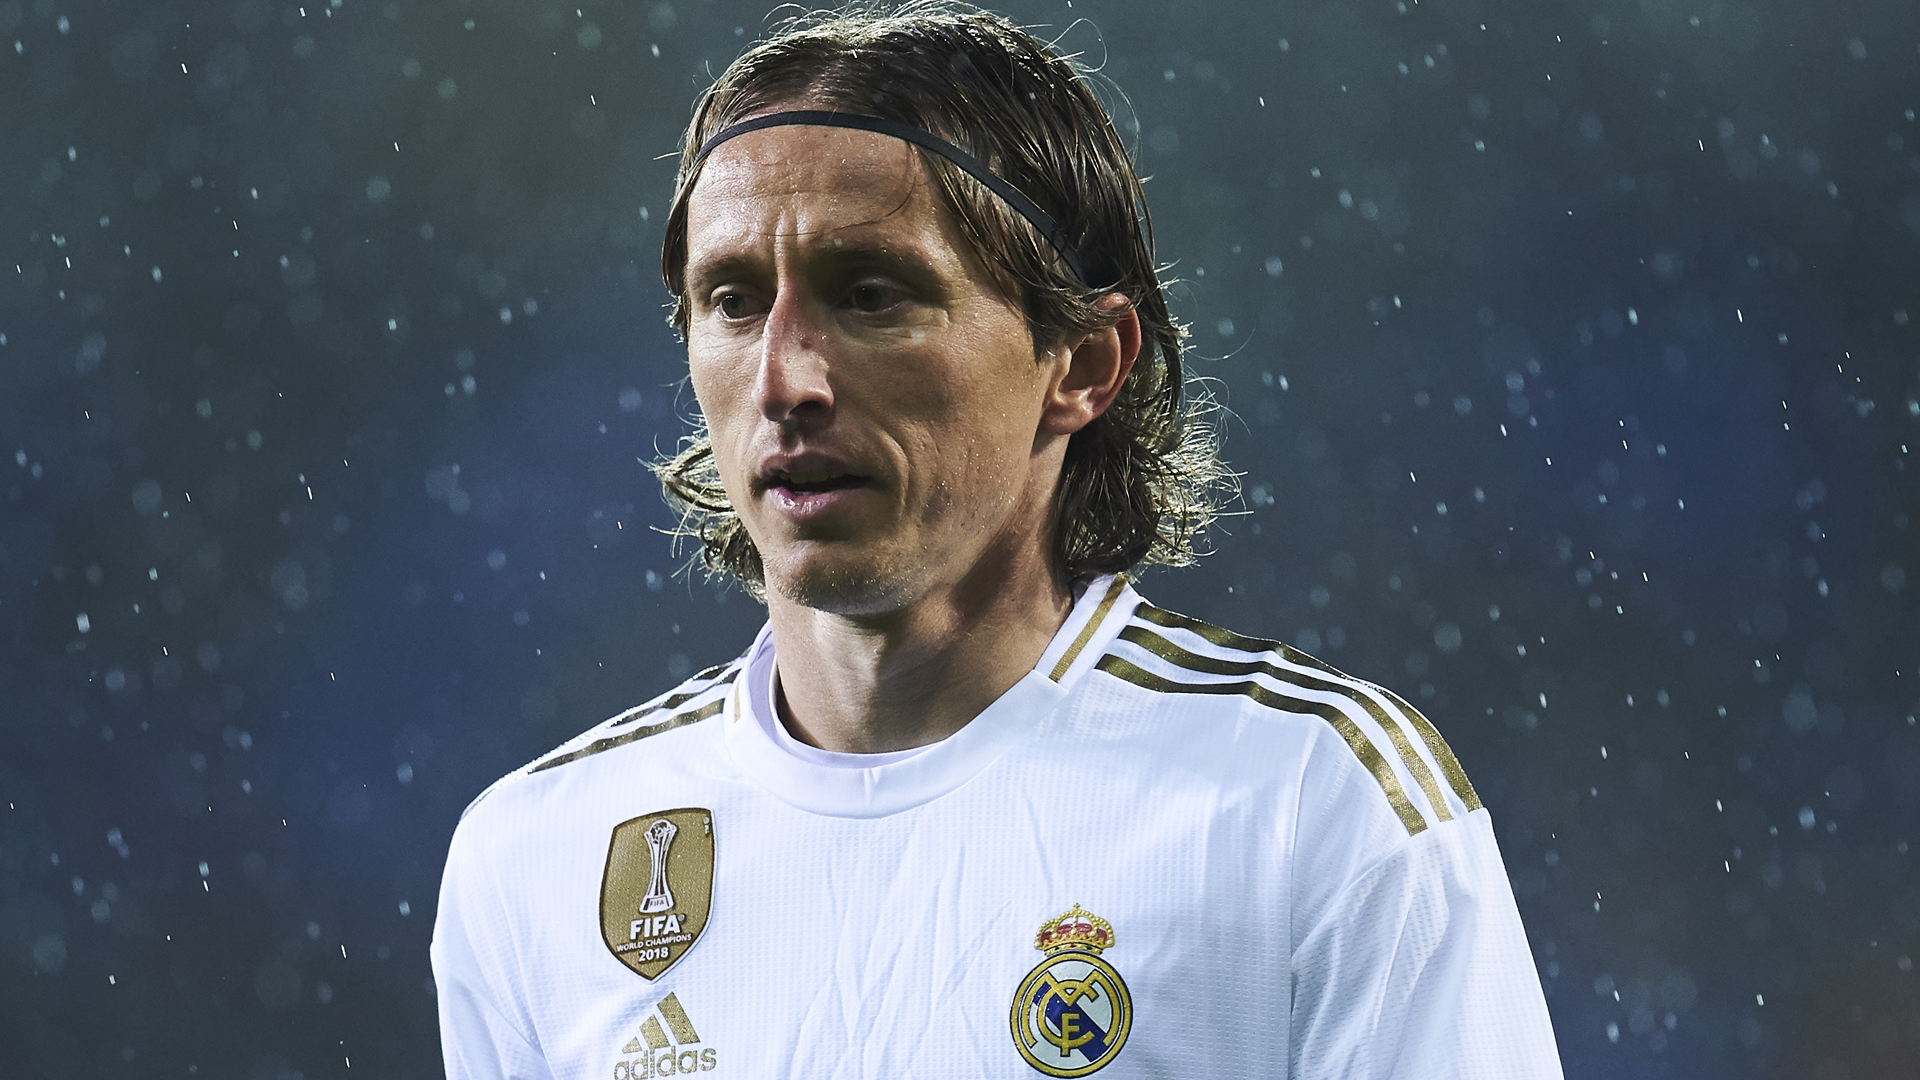 Modric: We'll see if one day I can play in Italy